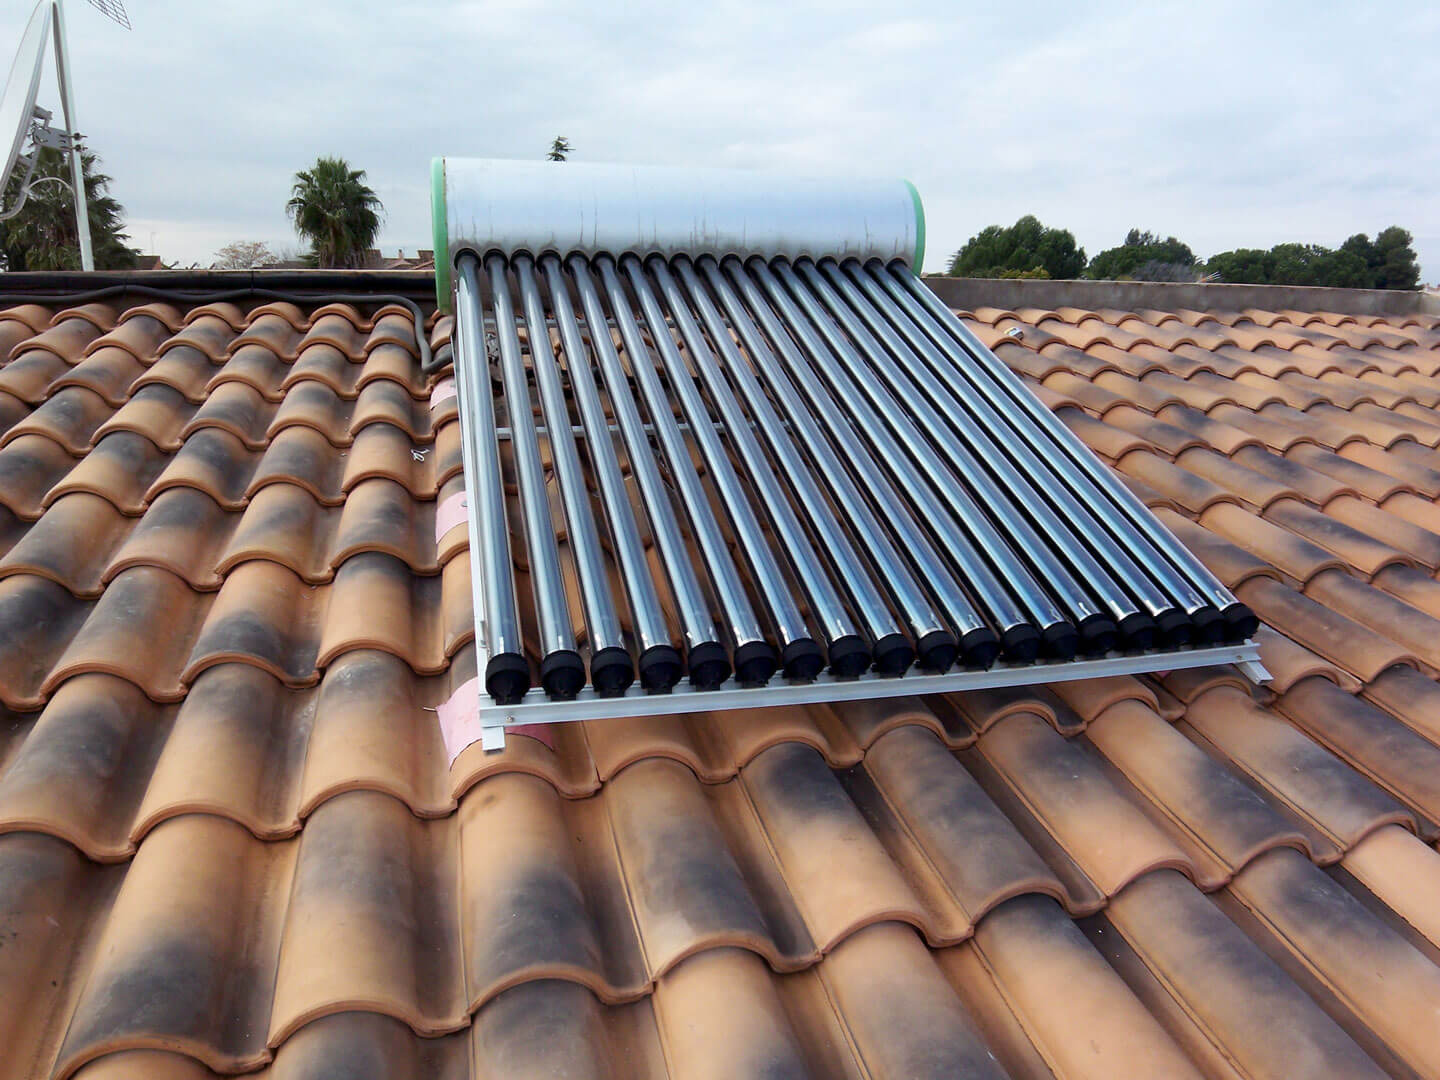 installation solaire thermique exemple - installation-solaire-thermique-exemple -